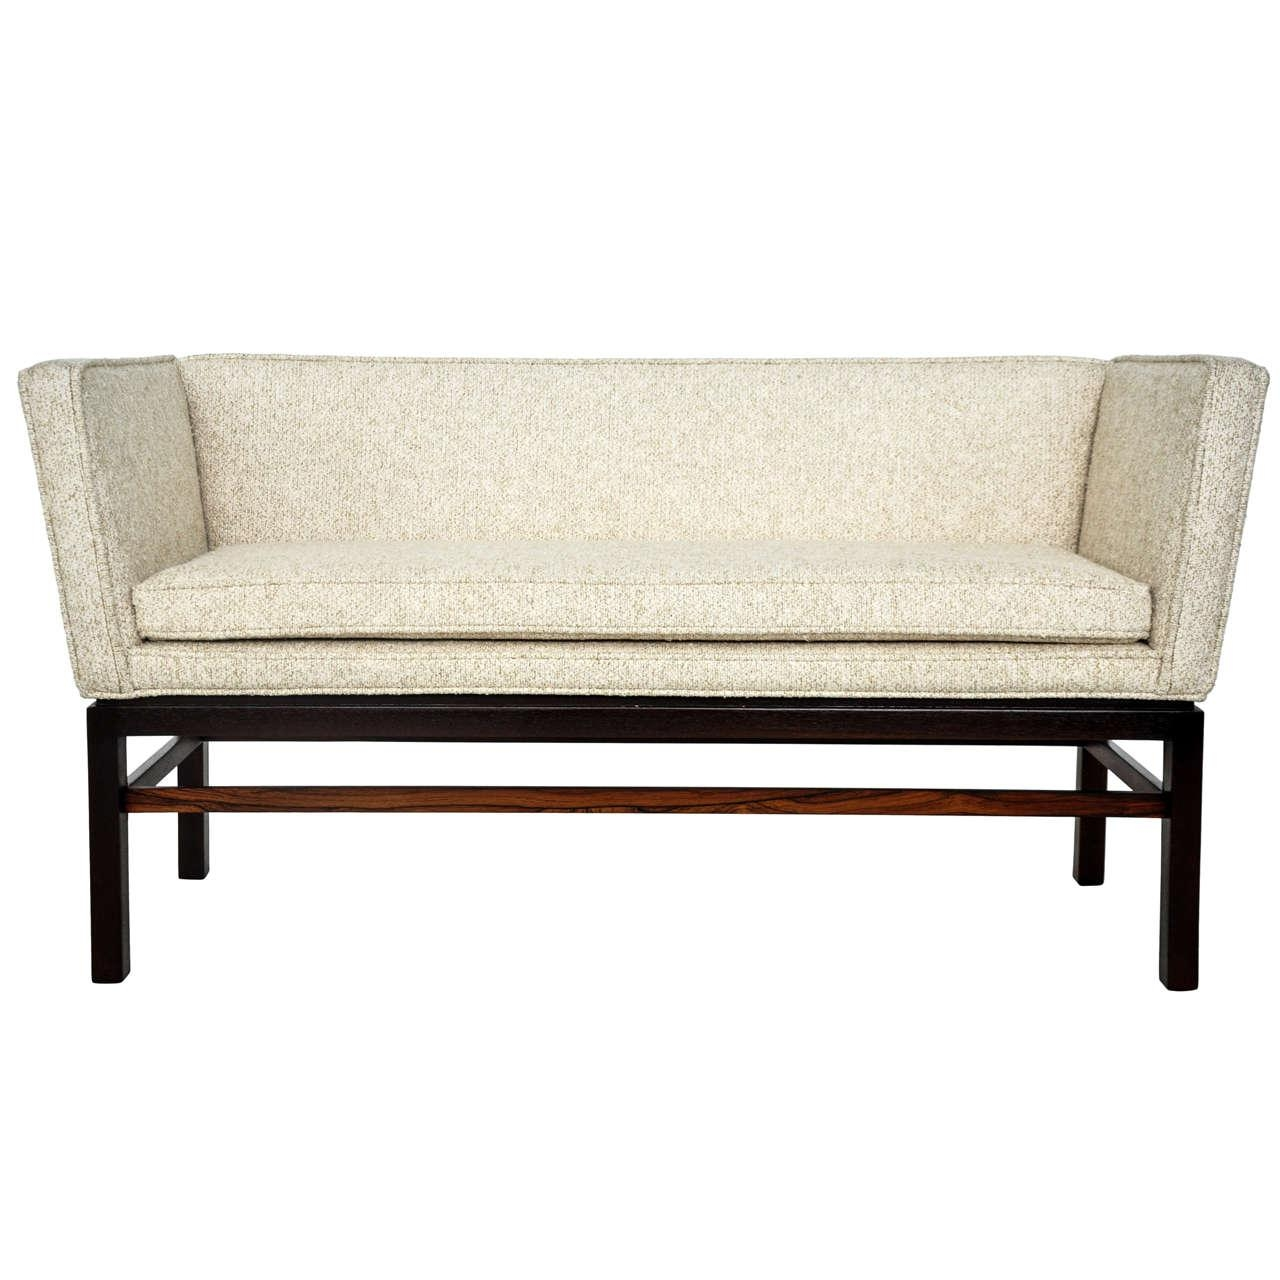 Bench Cushion Sofa With Ideas Photo 25277   Kengire With Bench Cushion Sofas (Image 7 of 20)